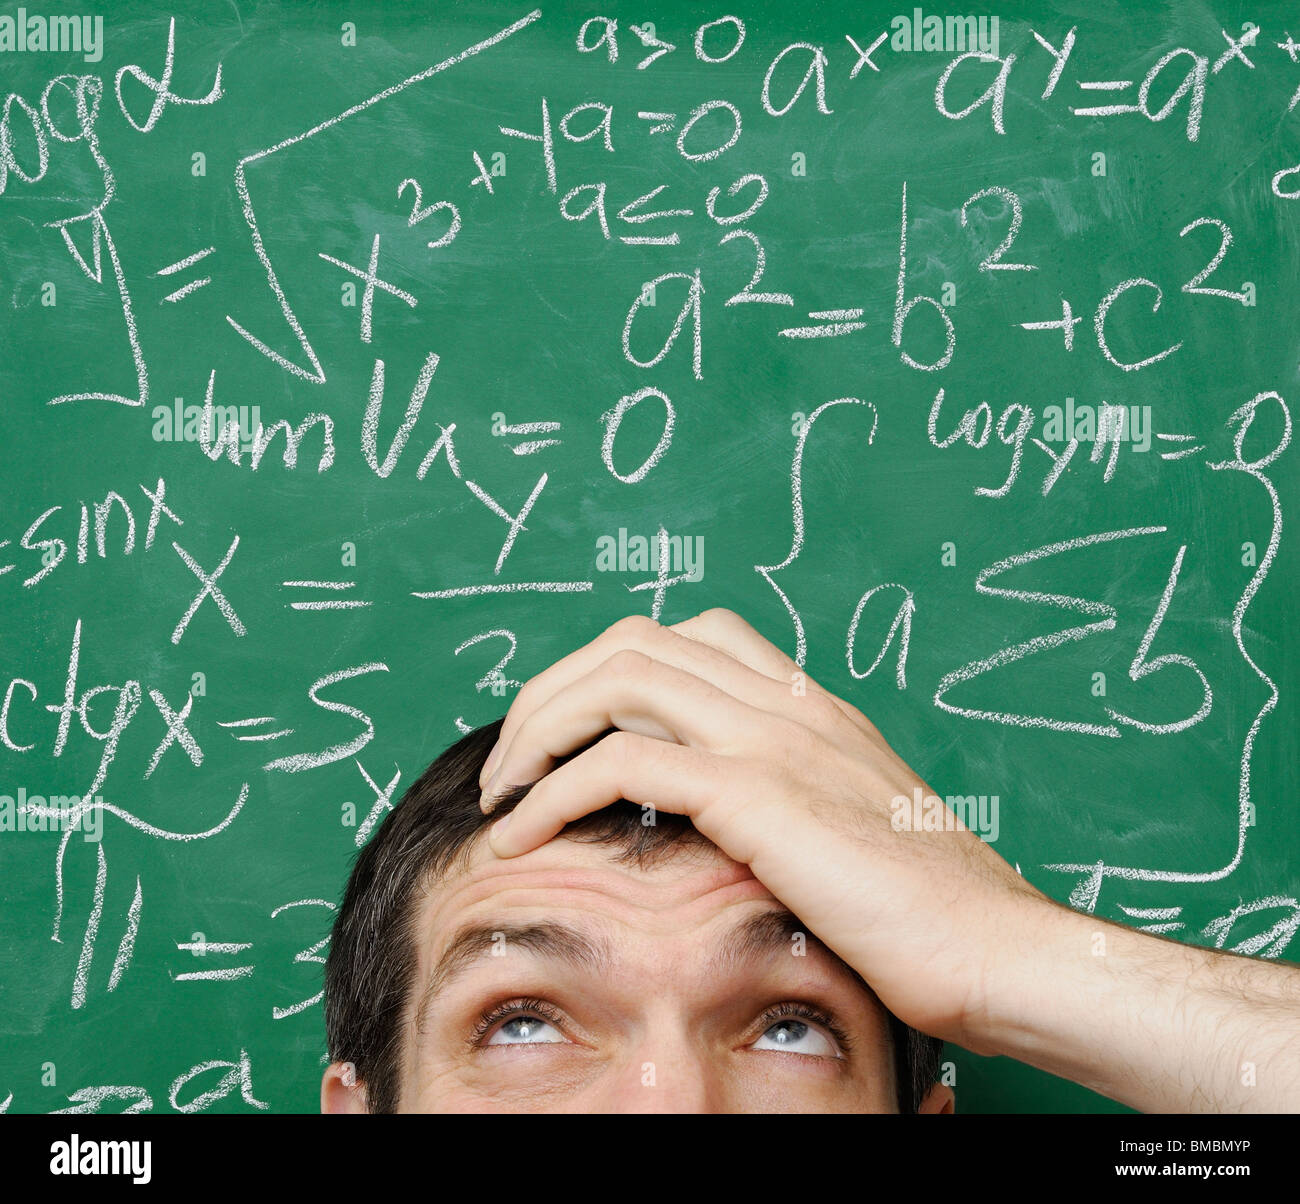 Confused Man in Front of Math Formula Written on a Chalkboard - Stock Image